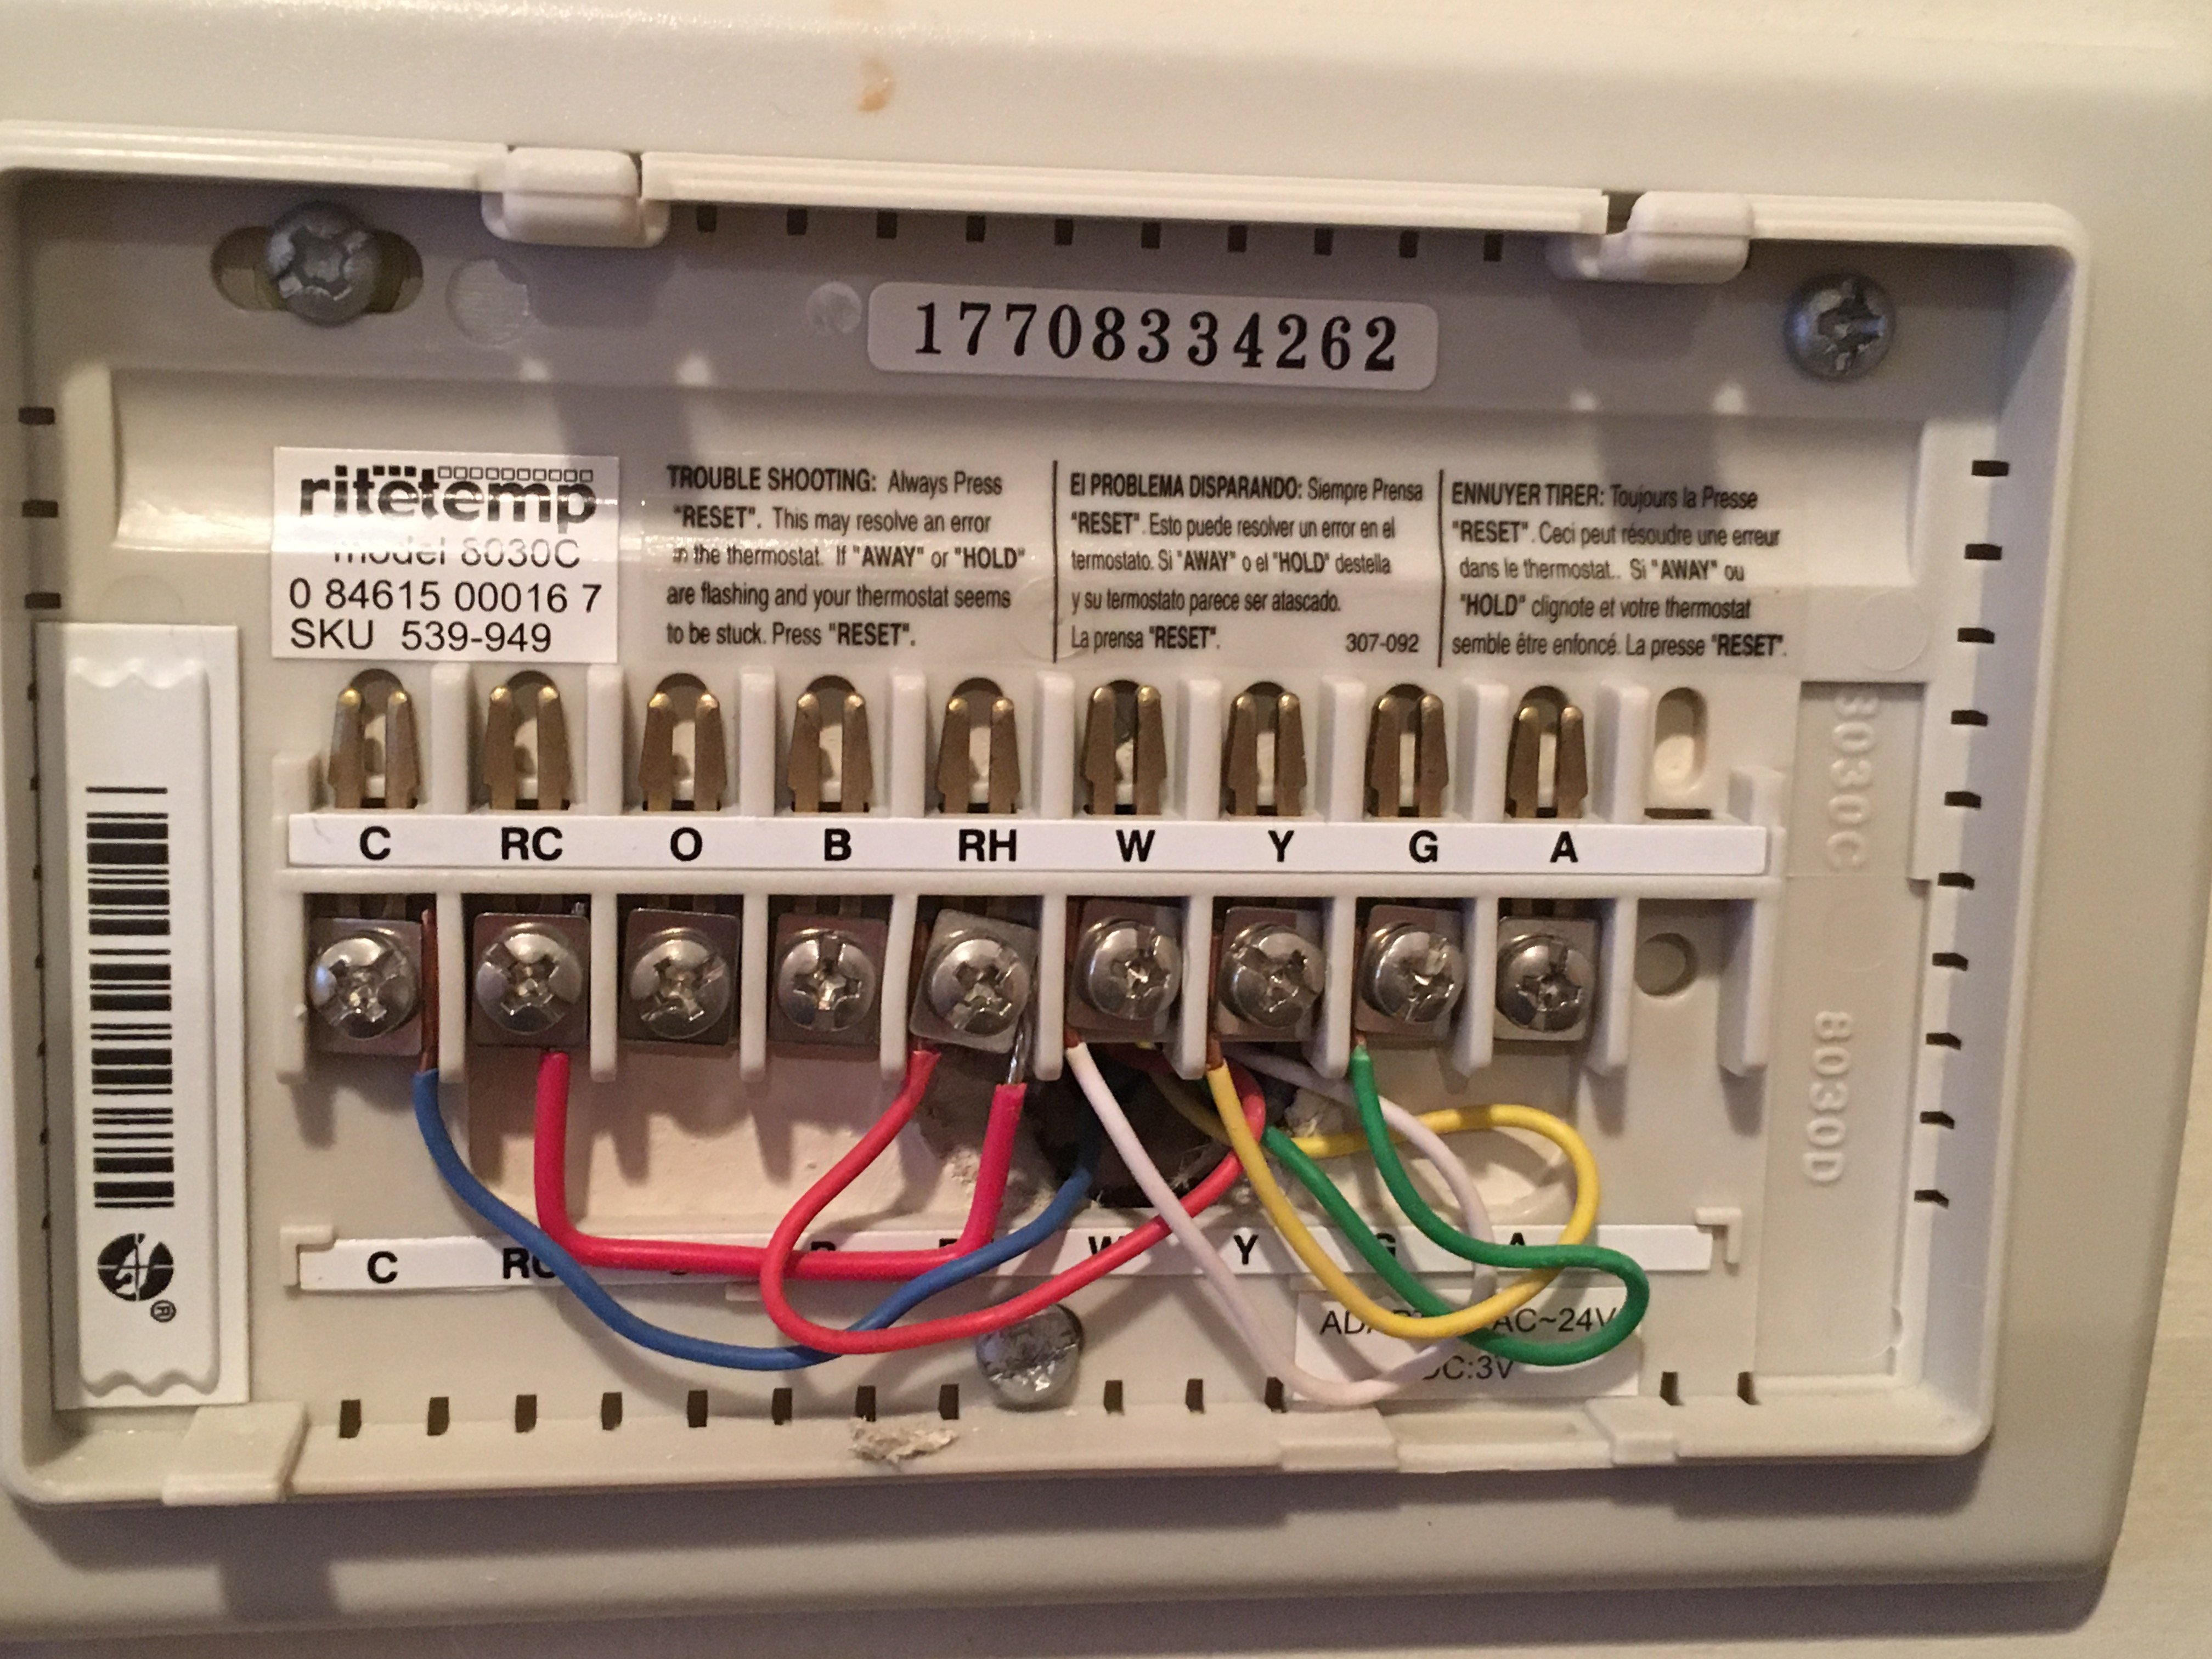 I Installed A New Honeywell Lyric T5 Thermostat And Now Heat Wont Wiring For Central Ac Img 3710jpegimg 3710jpeg 3706jpeg